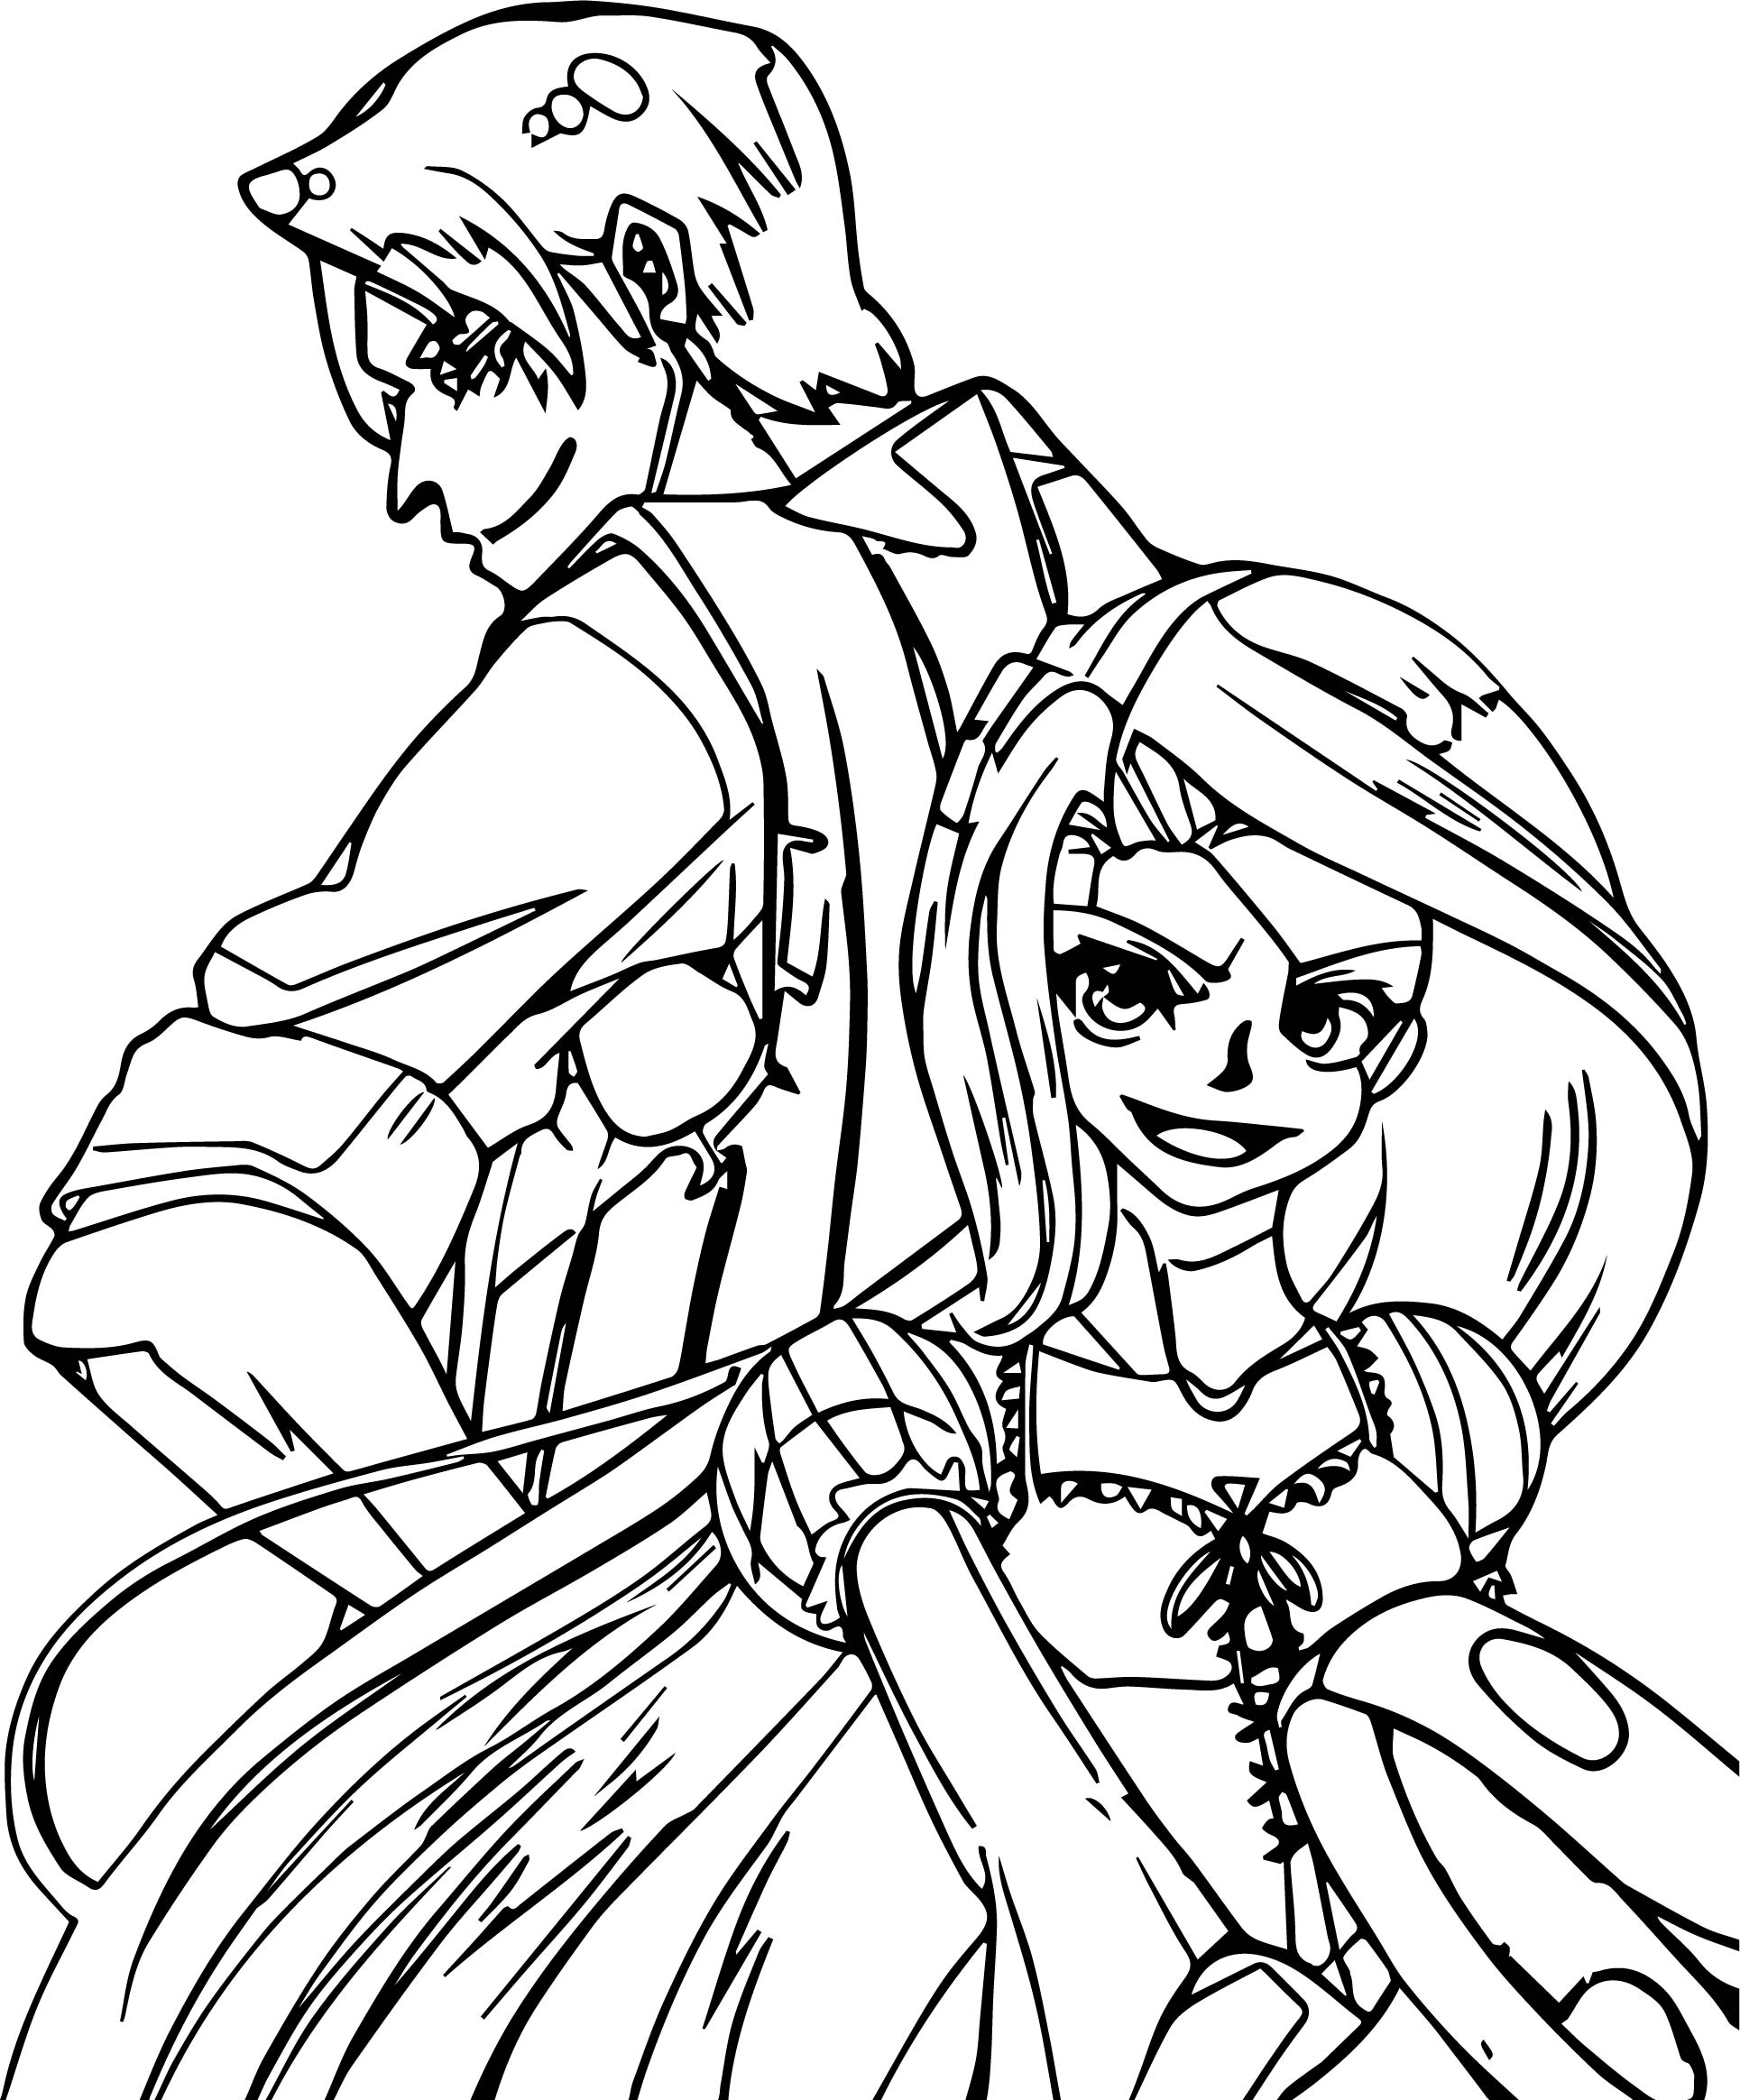 Rapunzel And Flynn Crazy Manga Coloring Page